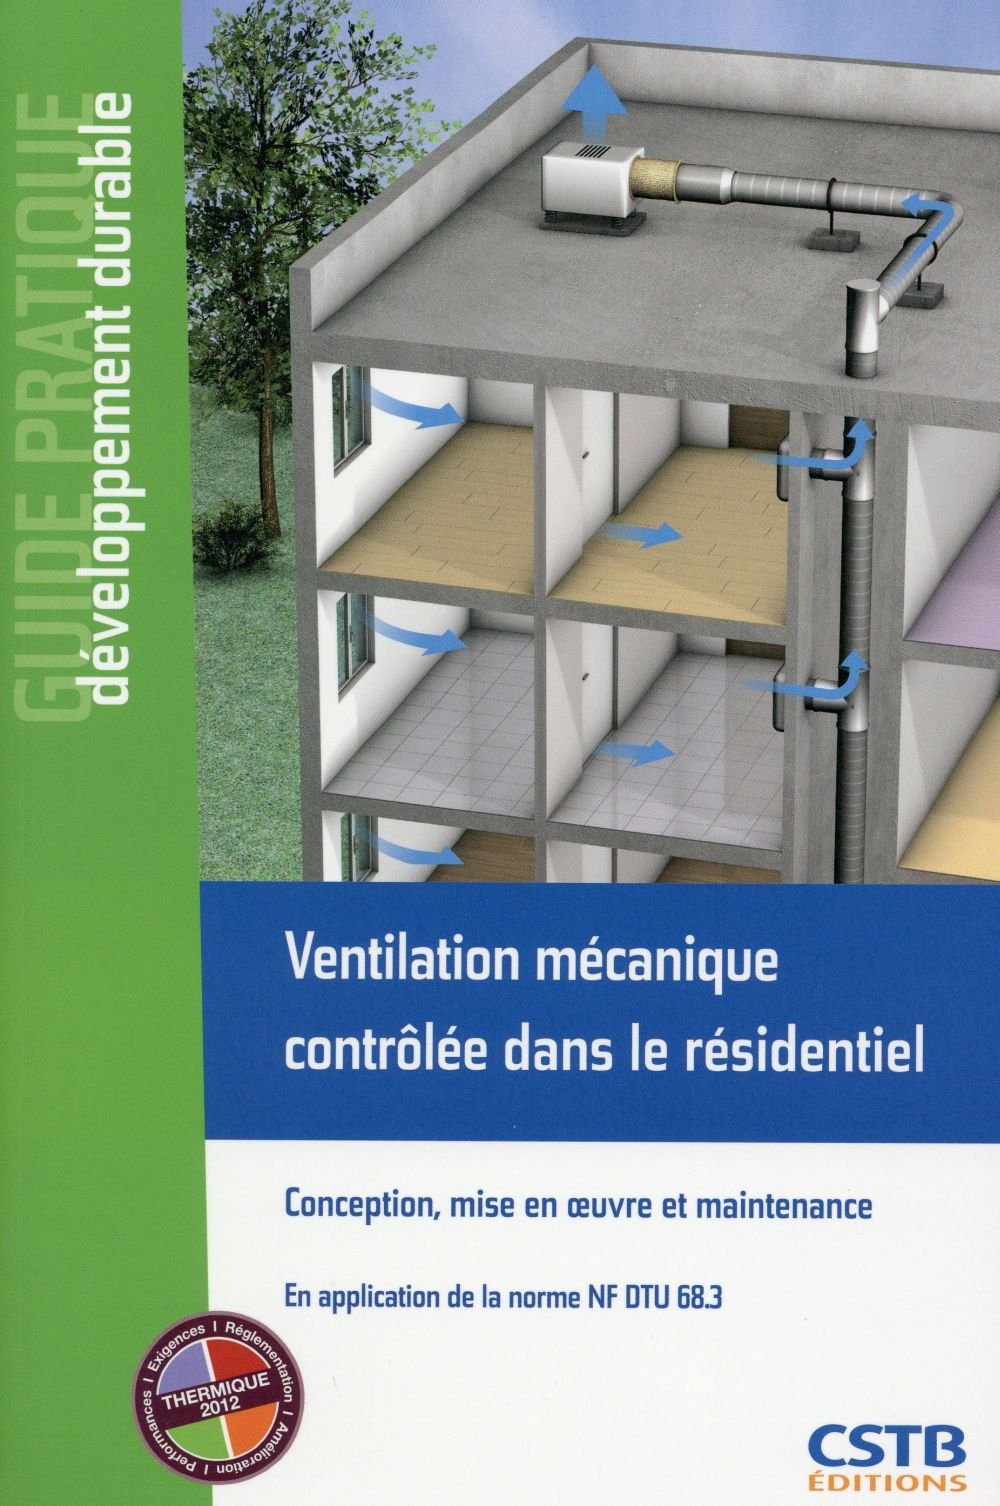 VENTILATION MECANIQUE CONTROLEE DANS LE RESIDENTIEL CONCEPTION, MISE EN  UVRE ET MAINTENANCE - EN AP BERNARD / LEPRINCE / CSTB Centre scientifique et technique du bâtiment